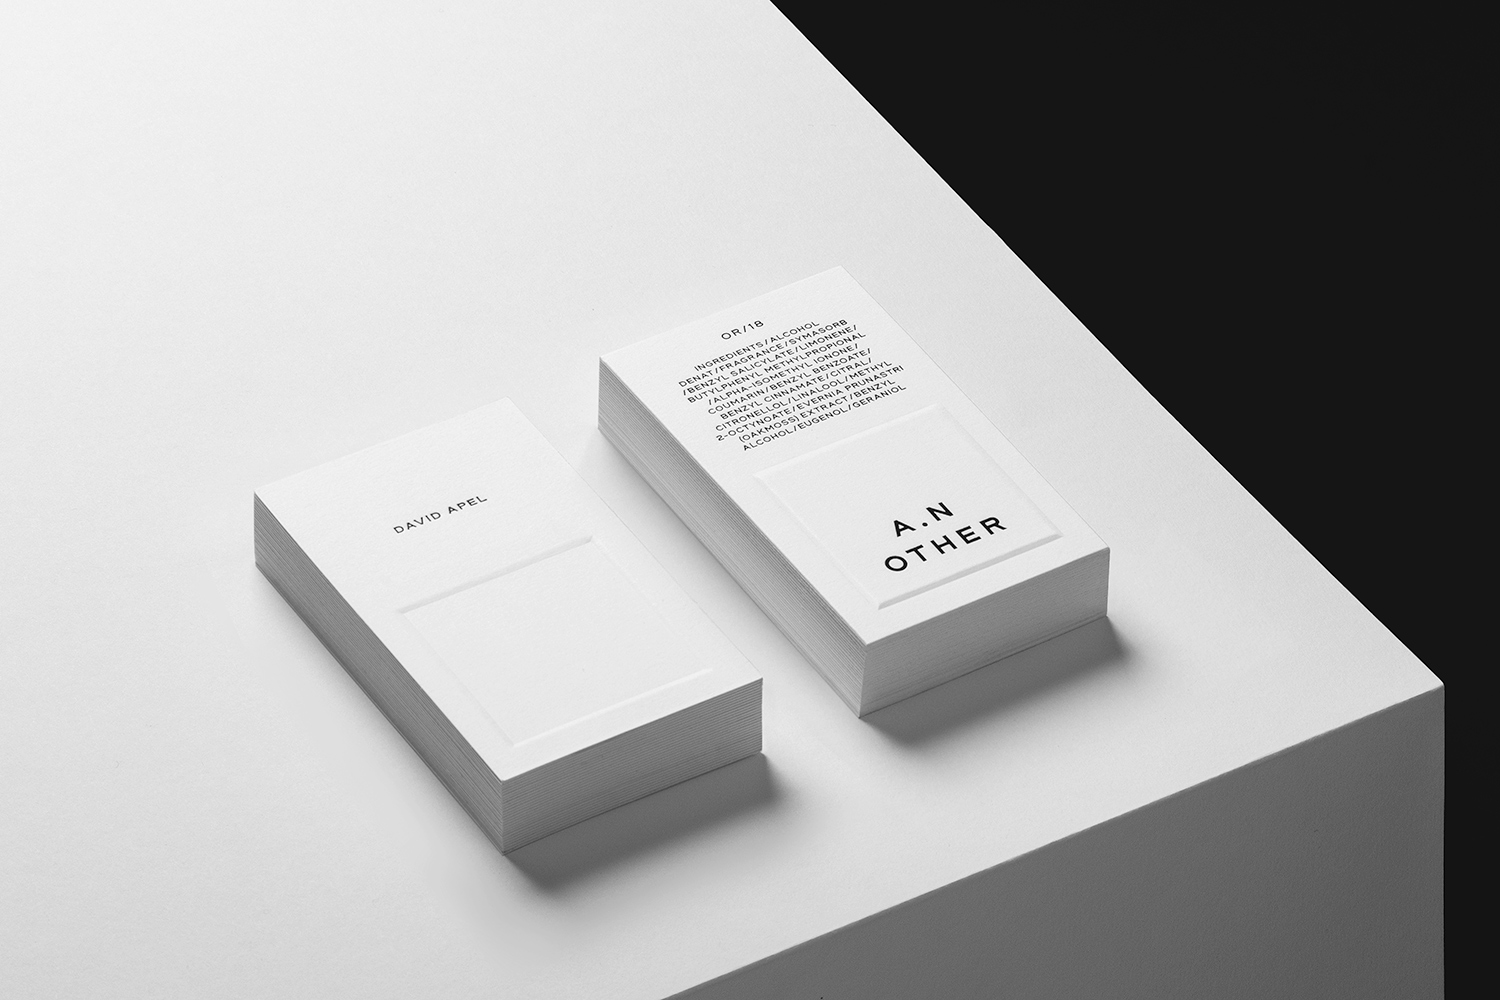 A.N OTHER fragrance packaging